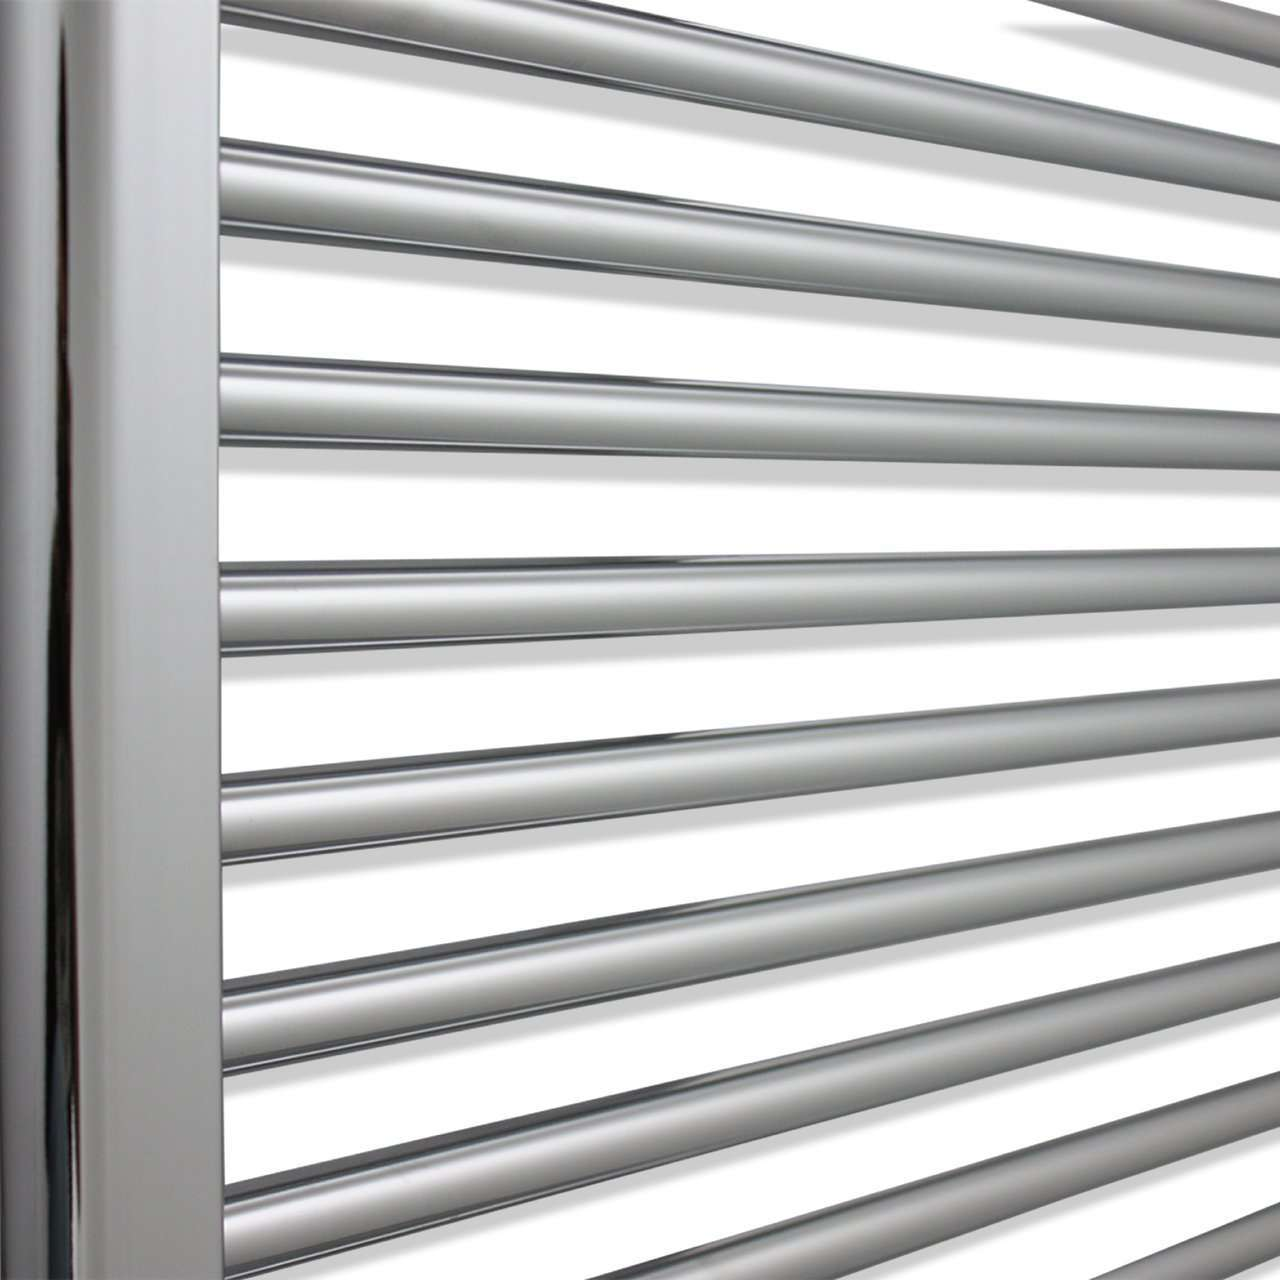 450mm Wide 400mm High Curved Chrome Heated Towel Rail Radiator HTR